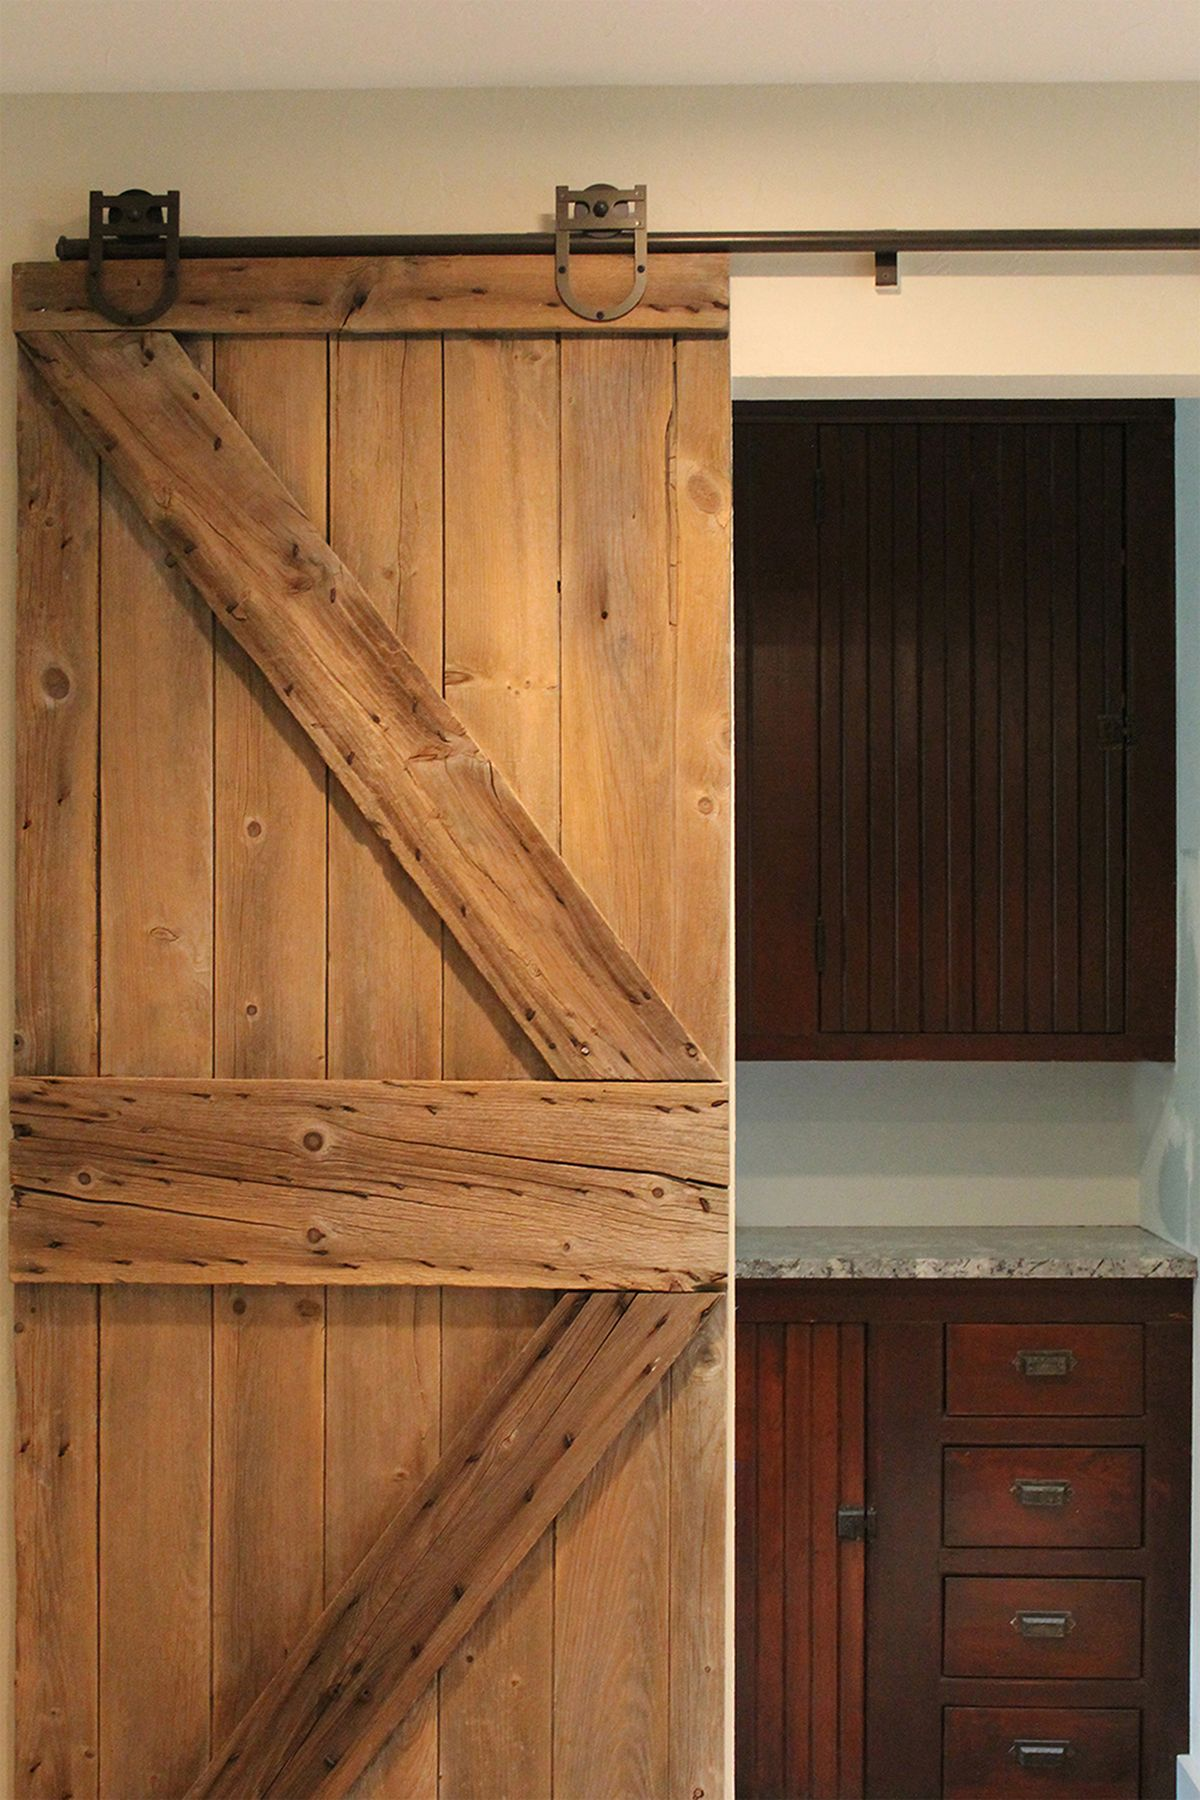 Repurposed barn door and cabinetry from an early 1900s farmhouse